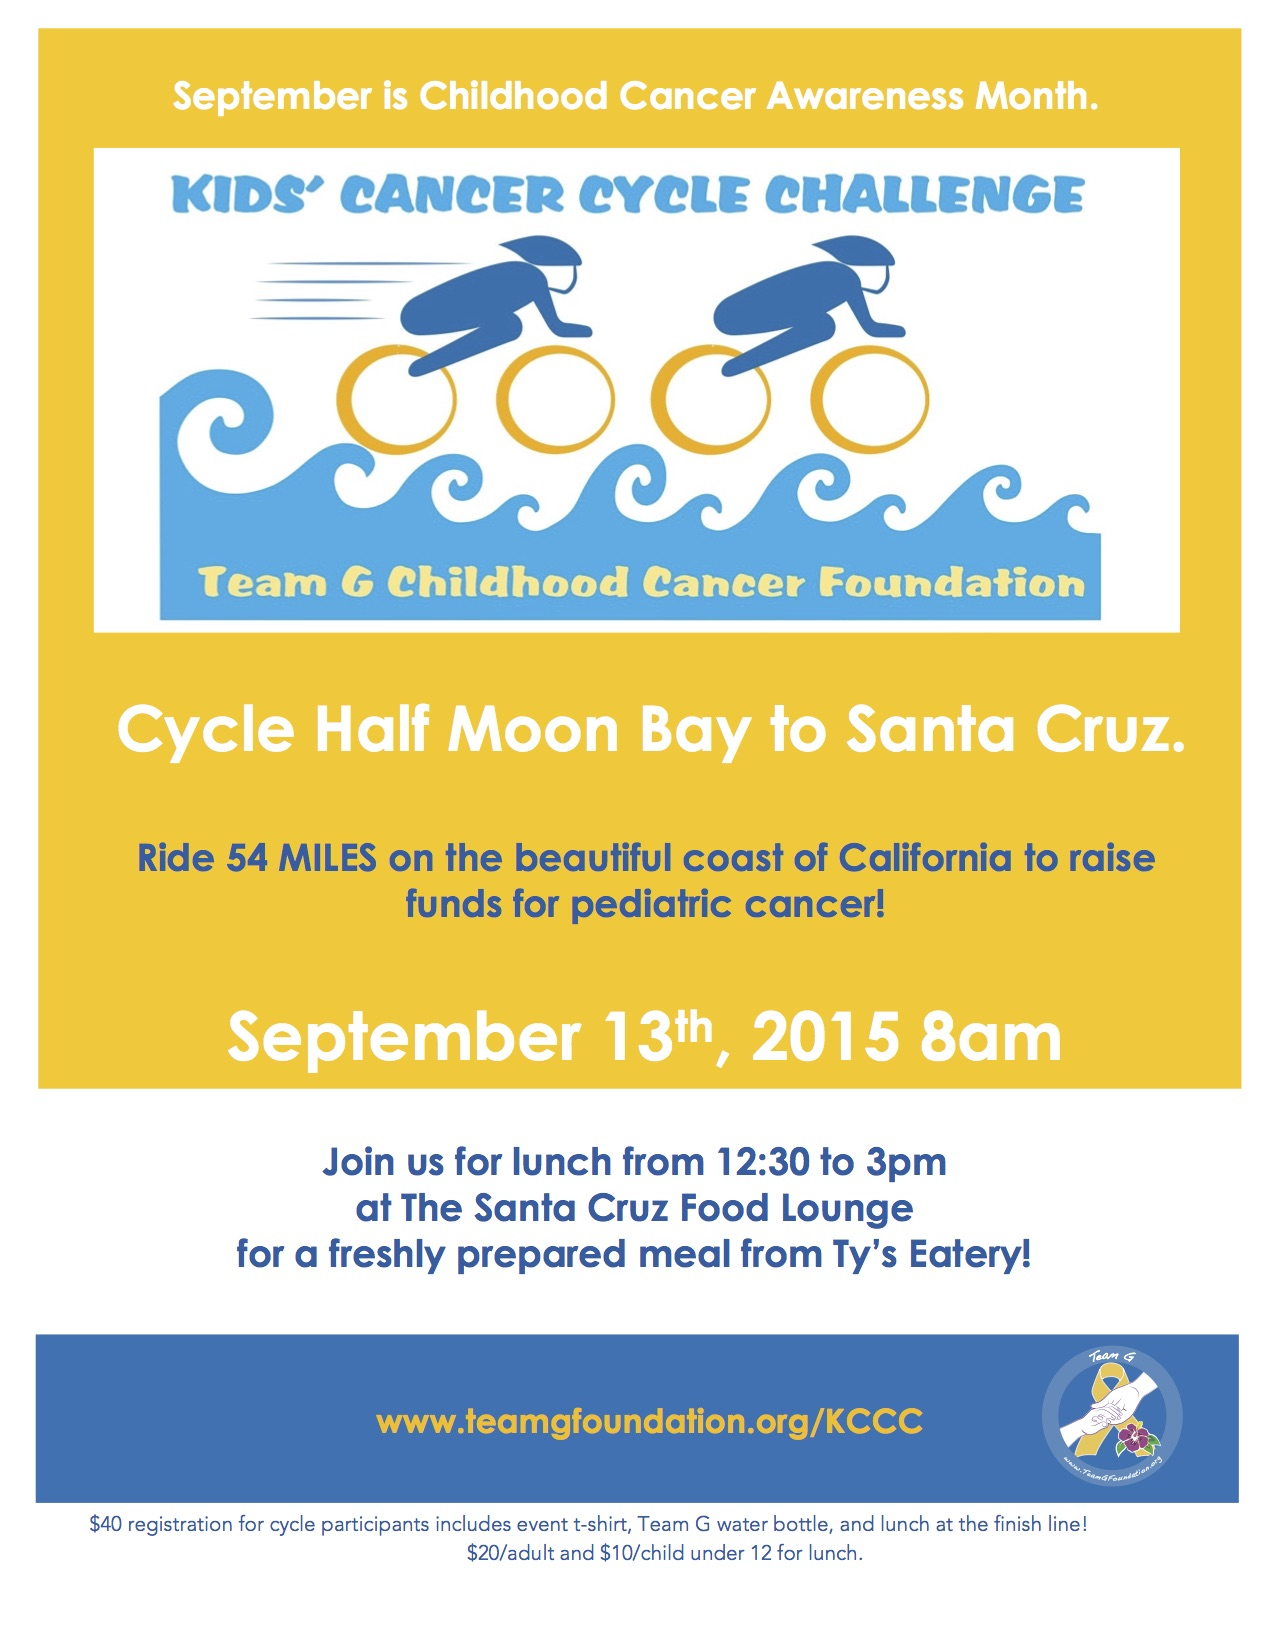 Kids' Cancer Cycle Challenge